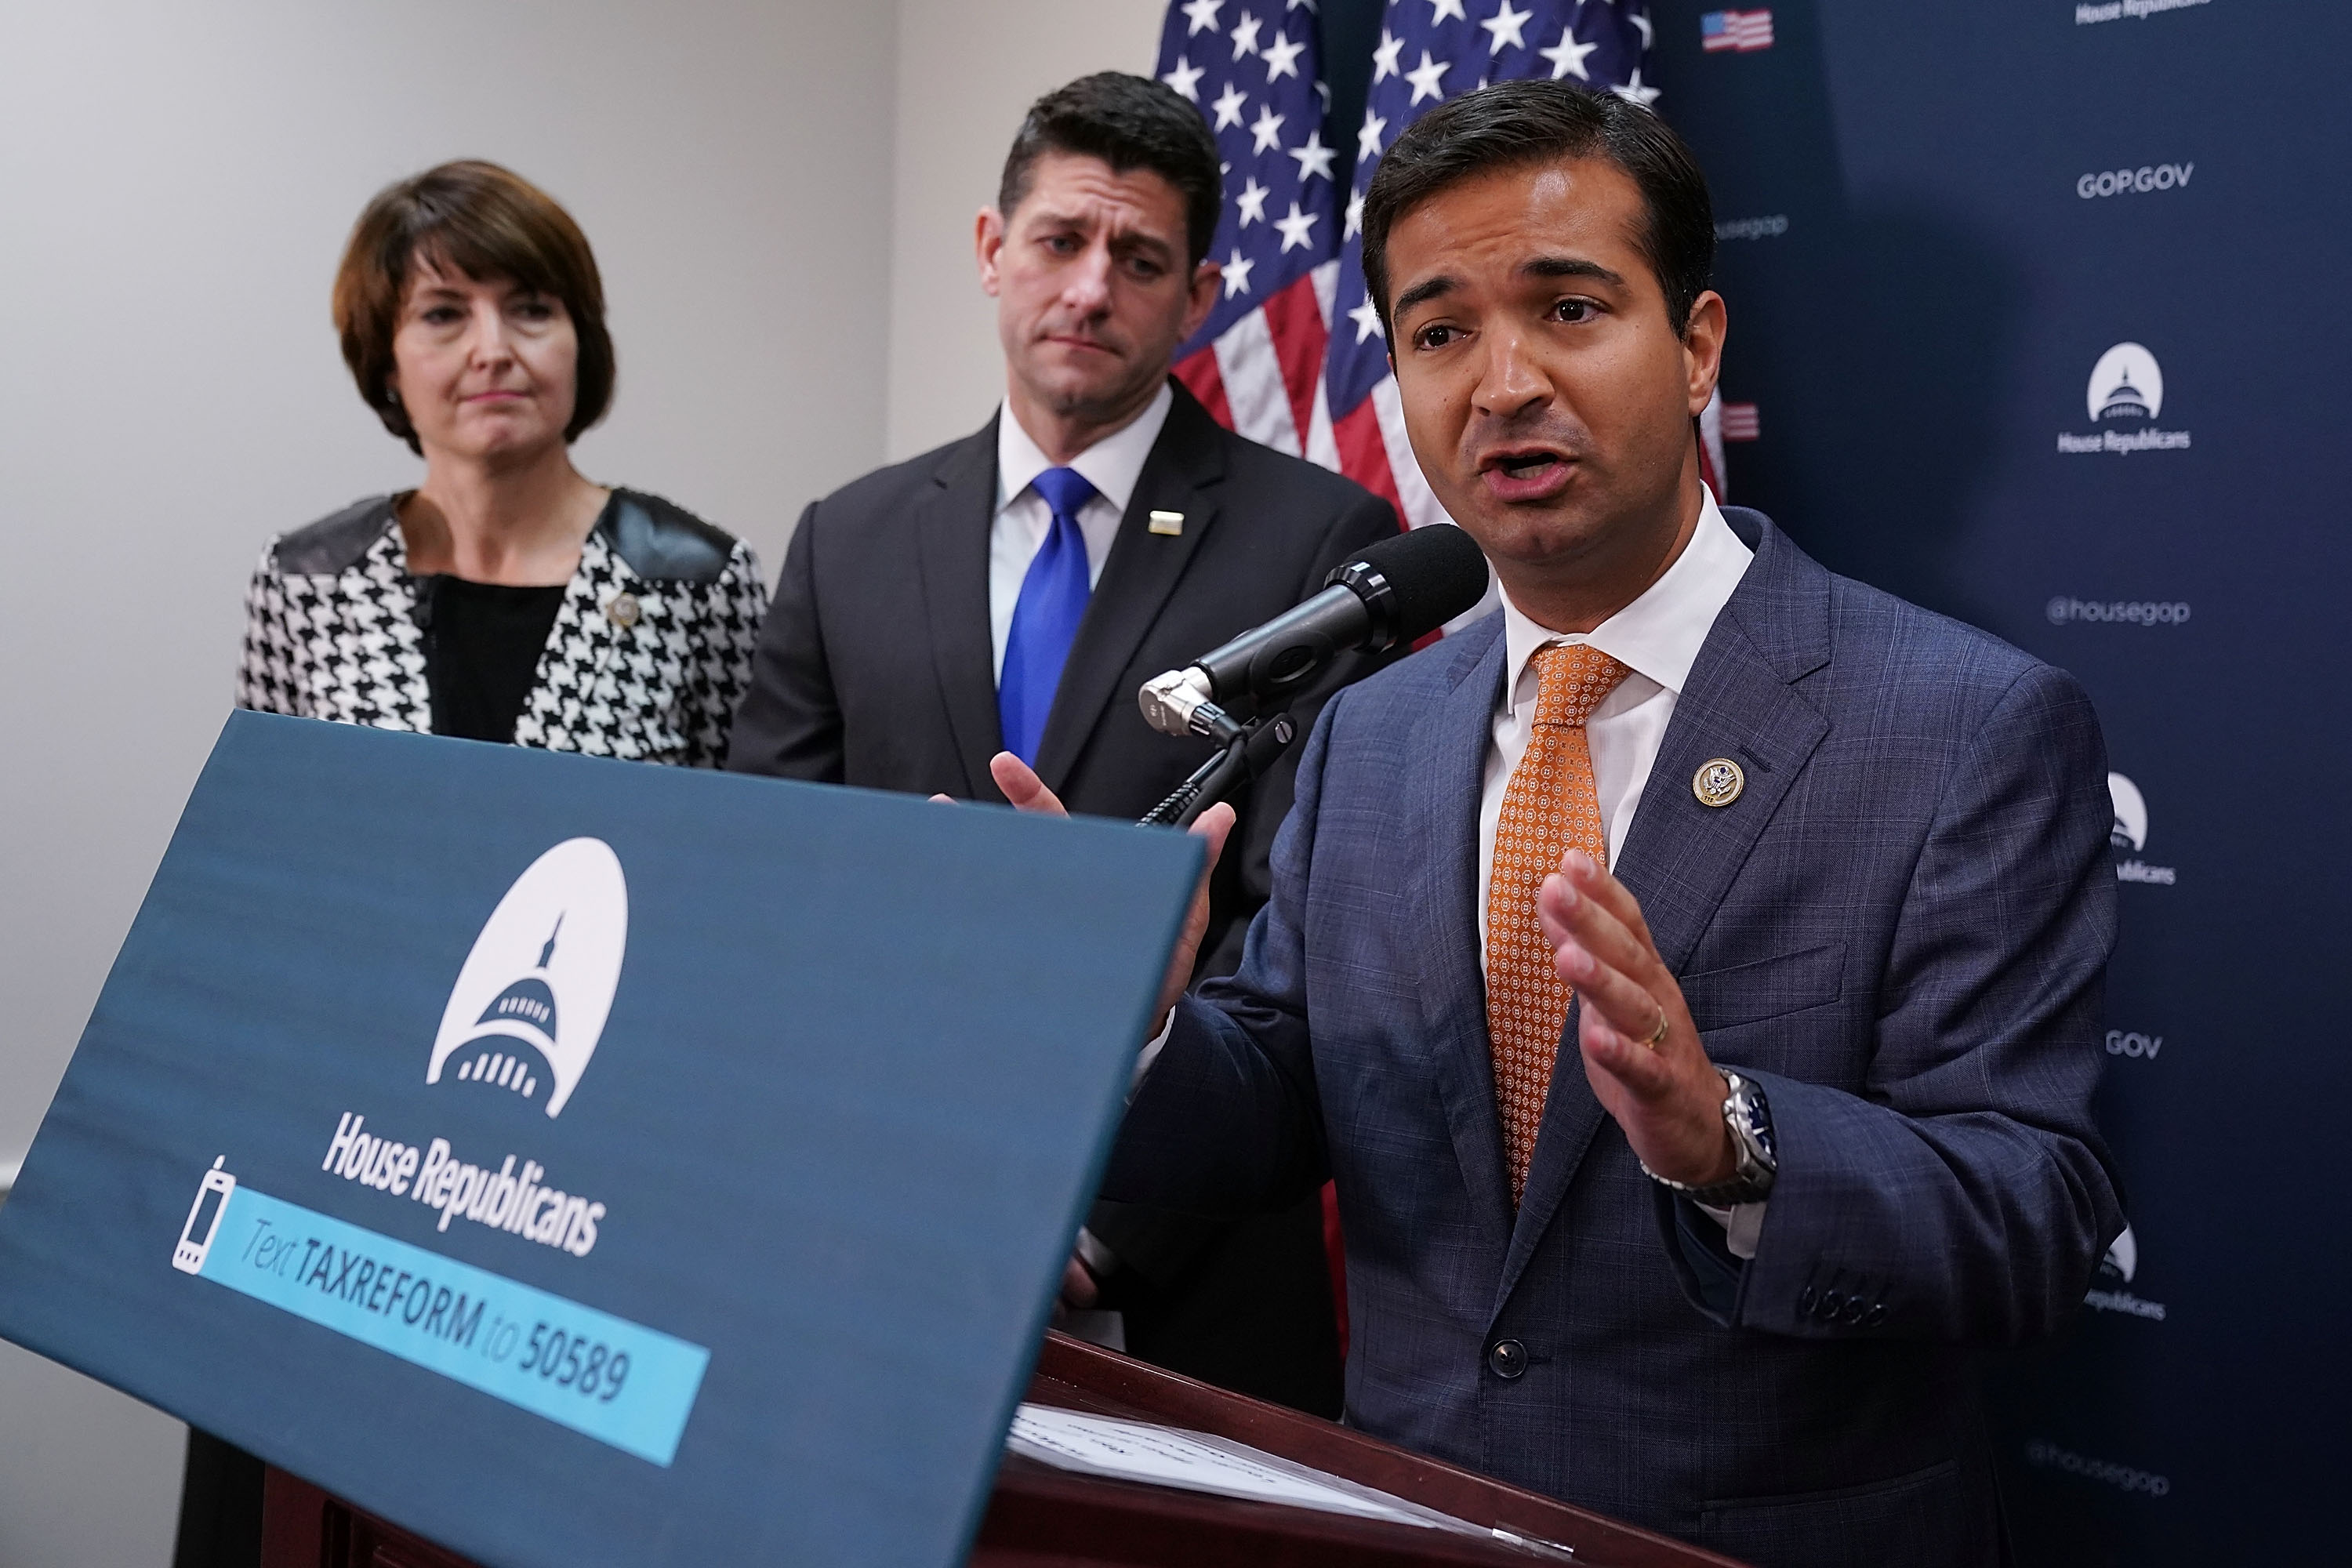 Rep. Carlos Curbelo (R-FL) (R) talks with reporters with Speaker of the House Paul Ryan (R-WI) and Rep. Cathy McMorris Rogers (R-WA) following the weekly House Republican Conference meeting at the U.S. Capitol October 24, 2017 in Washington, DC. Chip Somodevilla/Getty Images